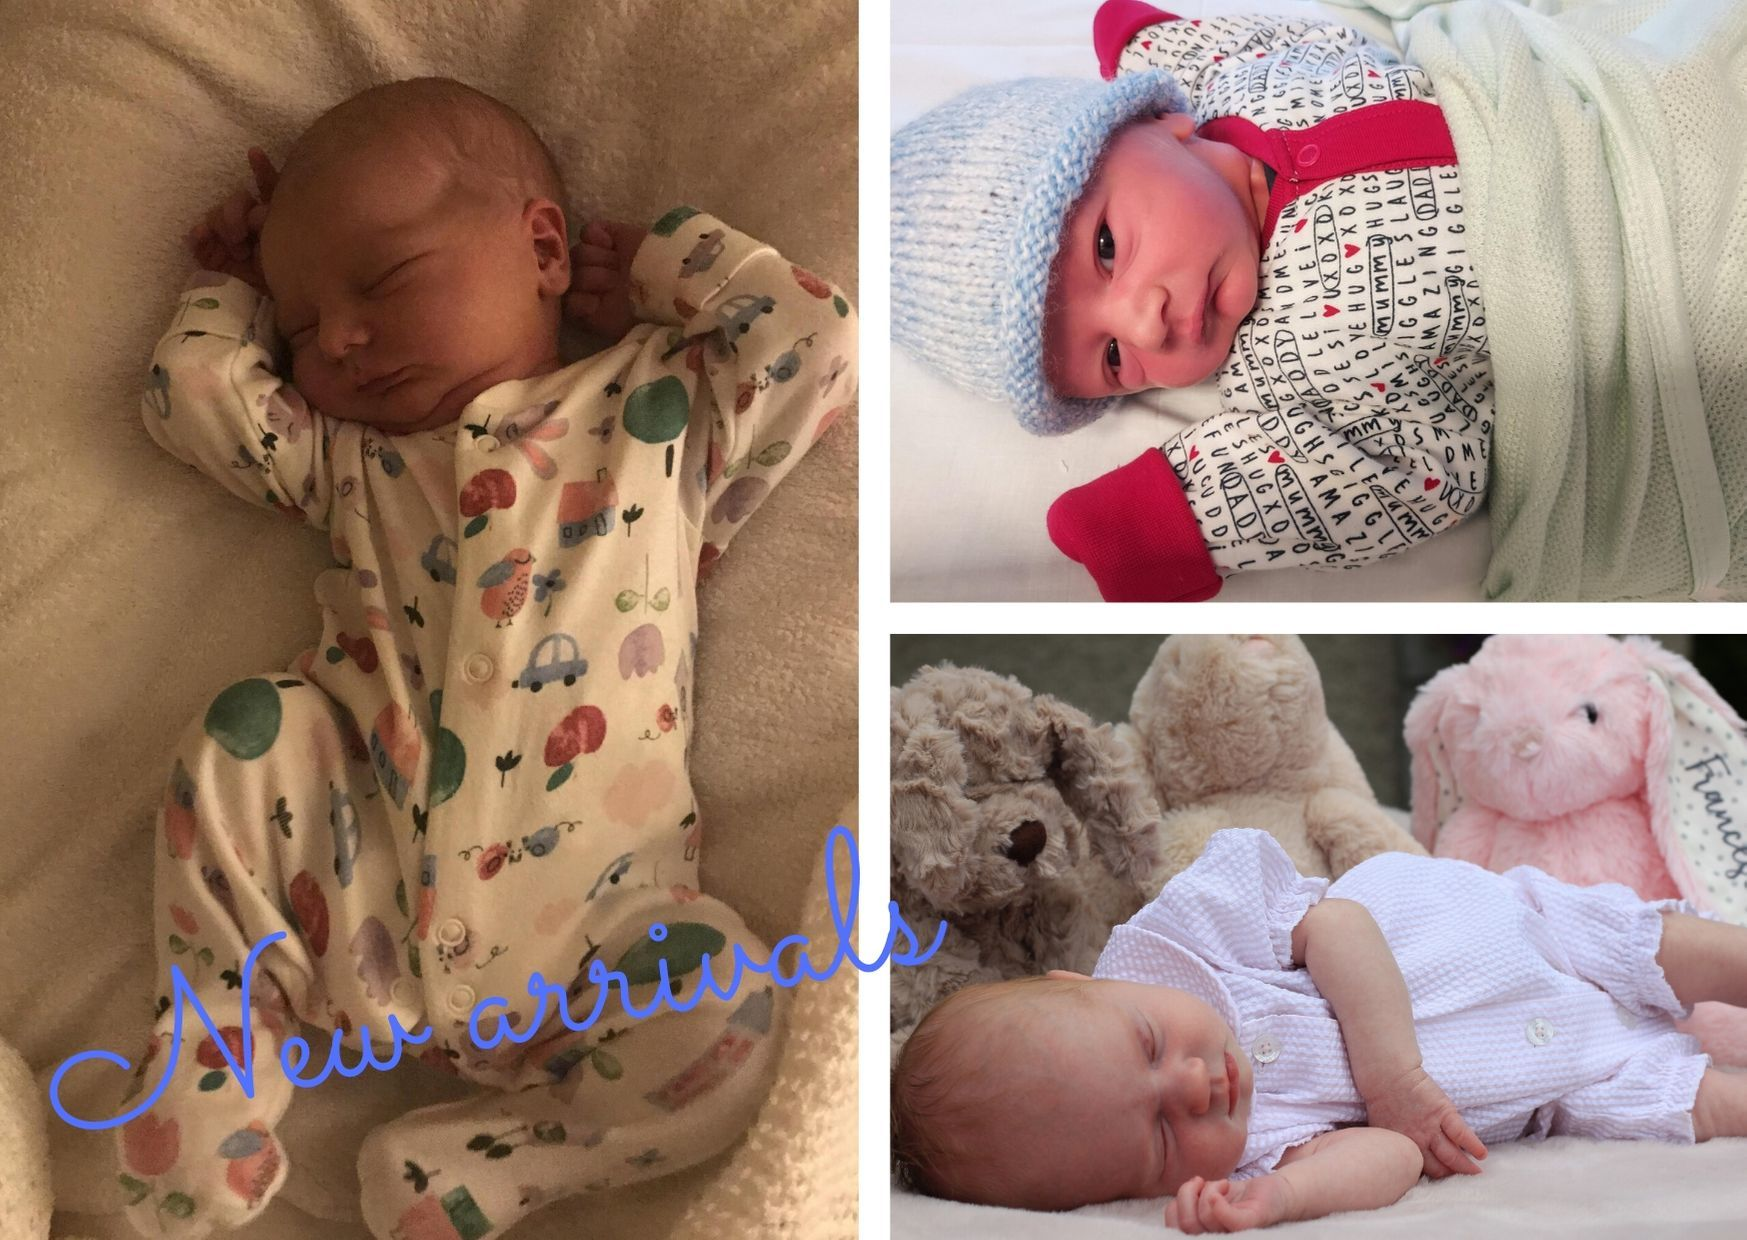 Families share baby photos of their bundles of joy